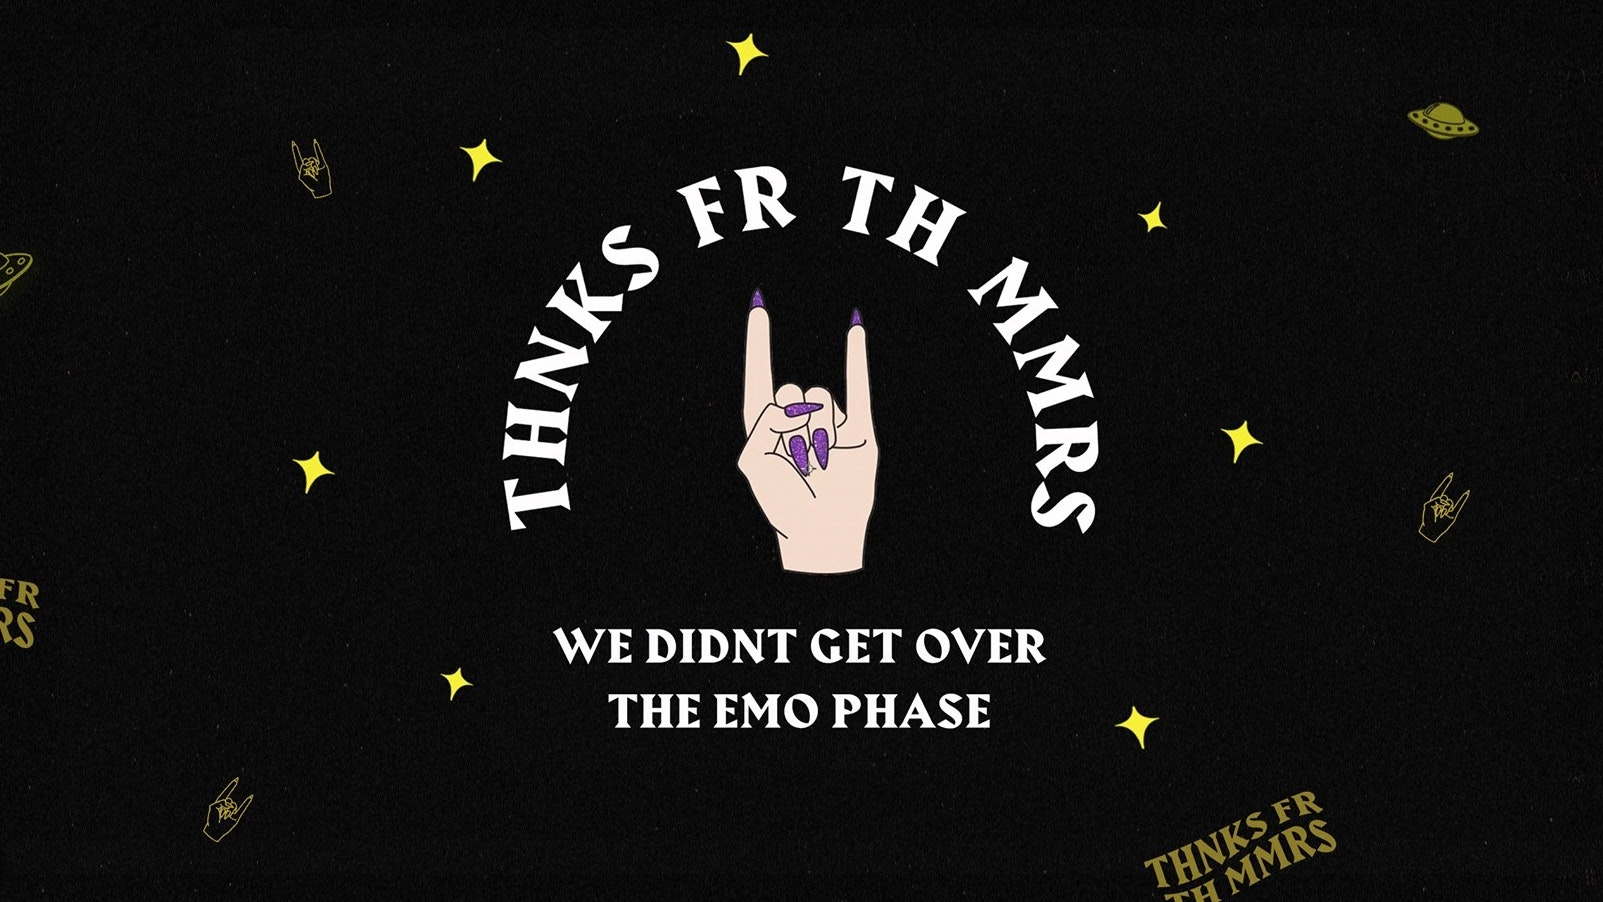 THNKS FR TH MMRS – Emo Easter Blowout